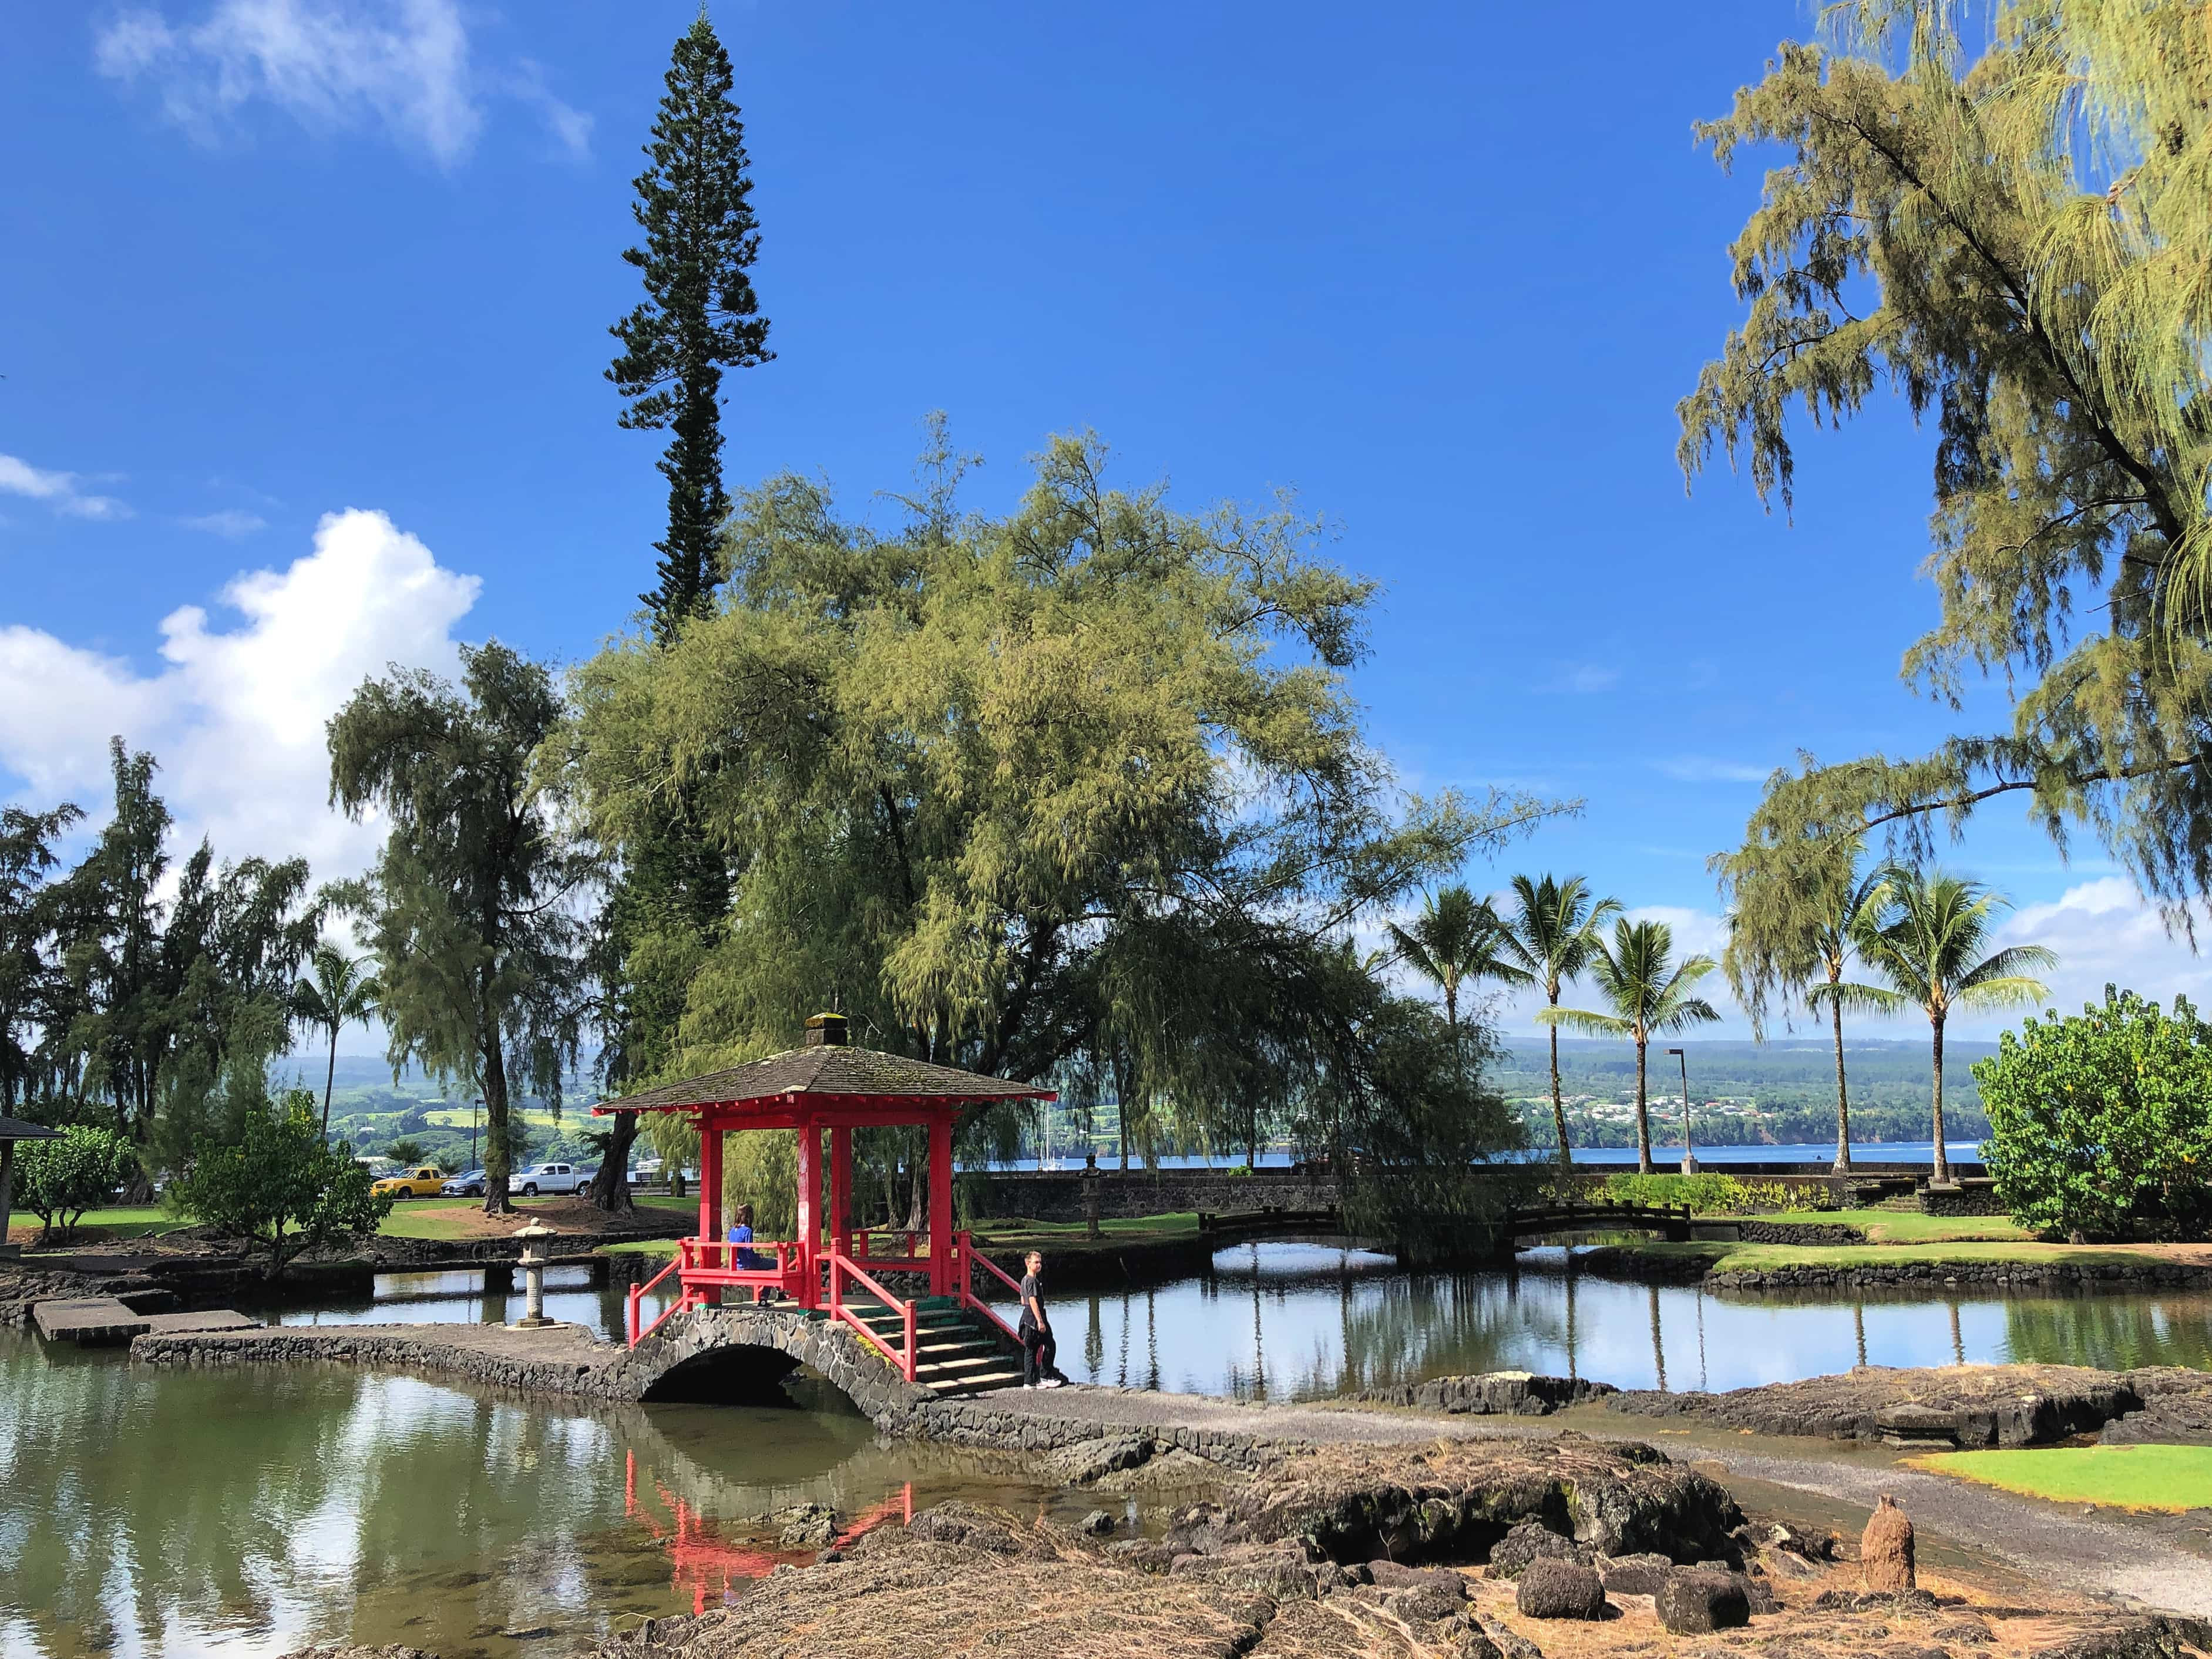 Queen Liliuokalani Gardens in Hilo is a great place for a picnic before your Volcanoes National Park visit